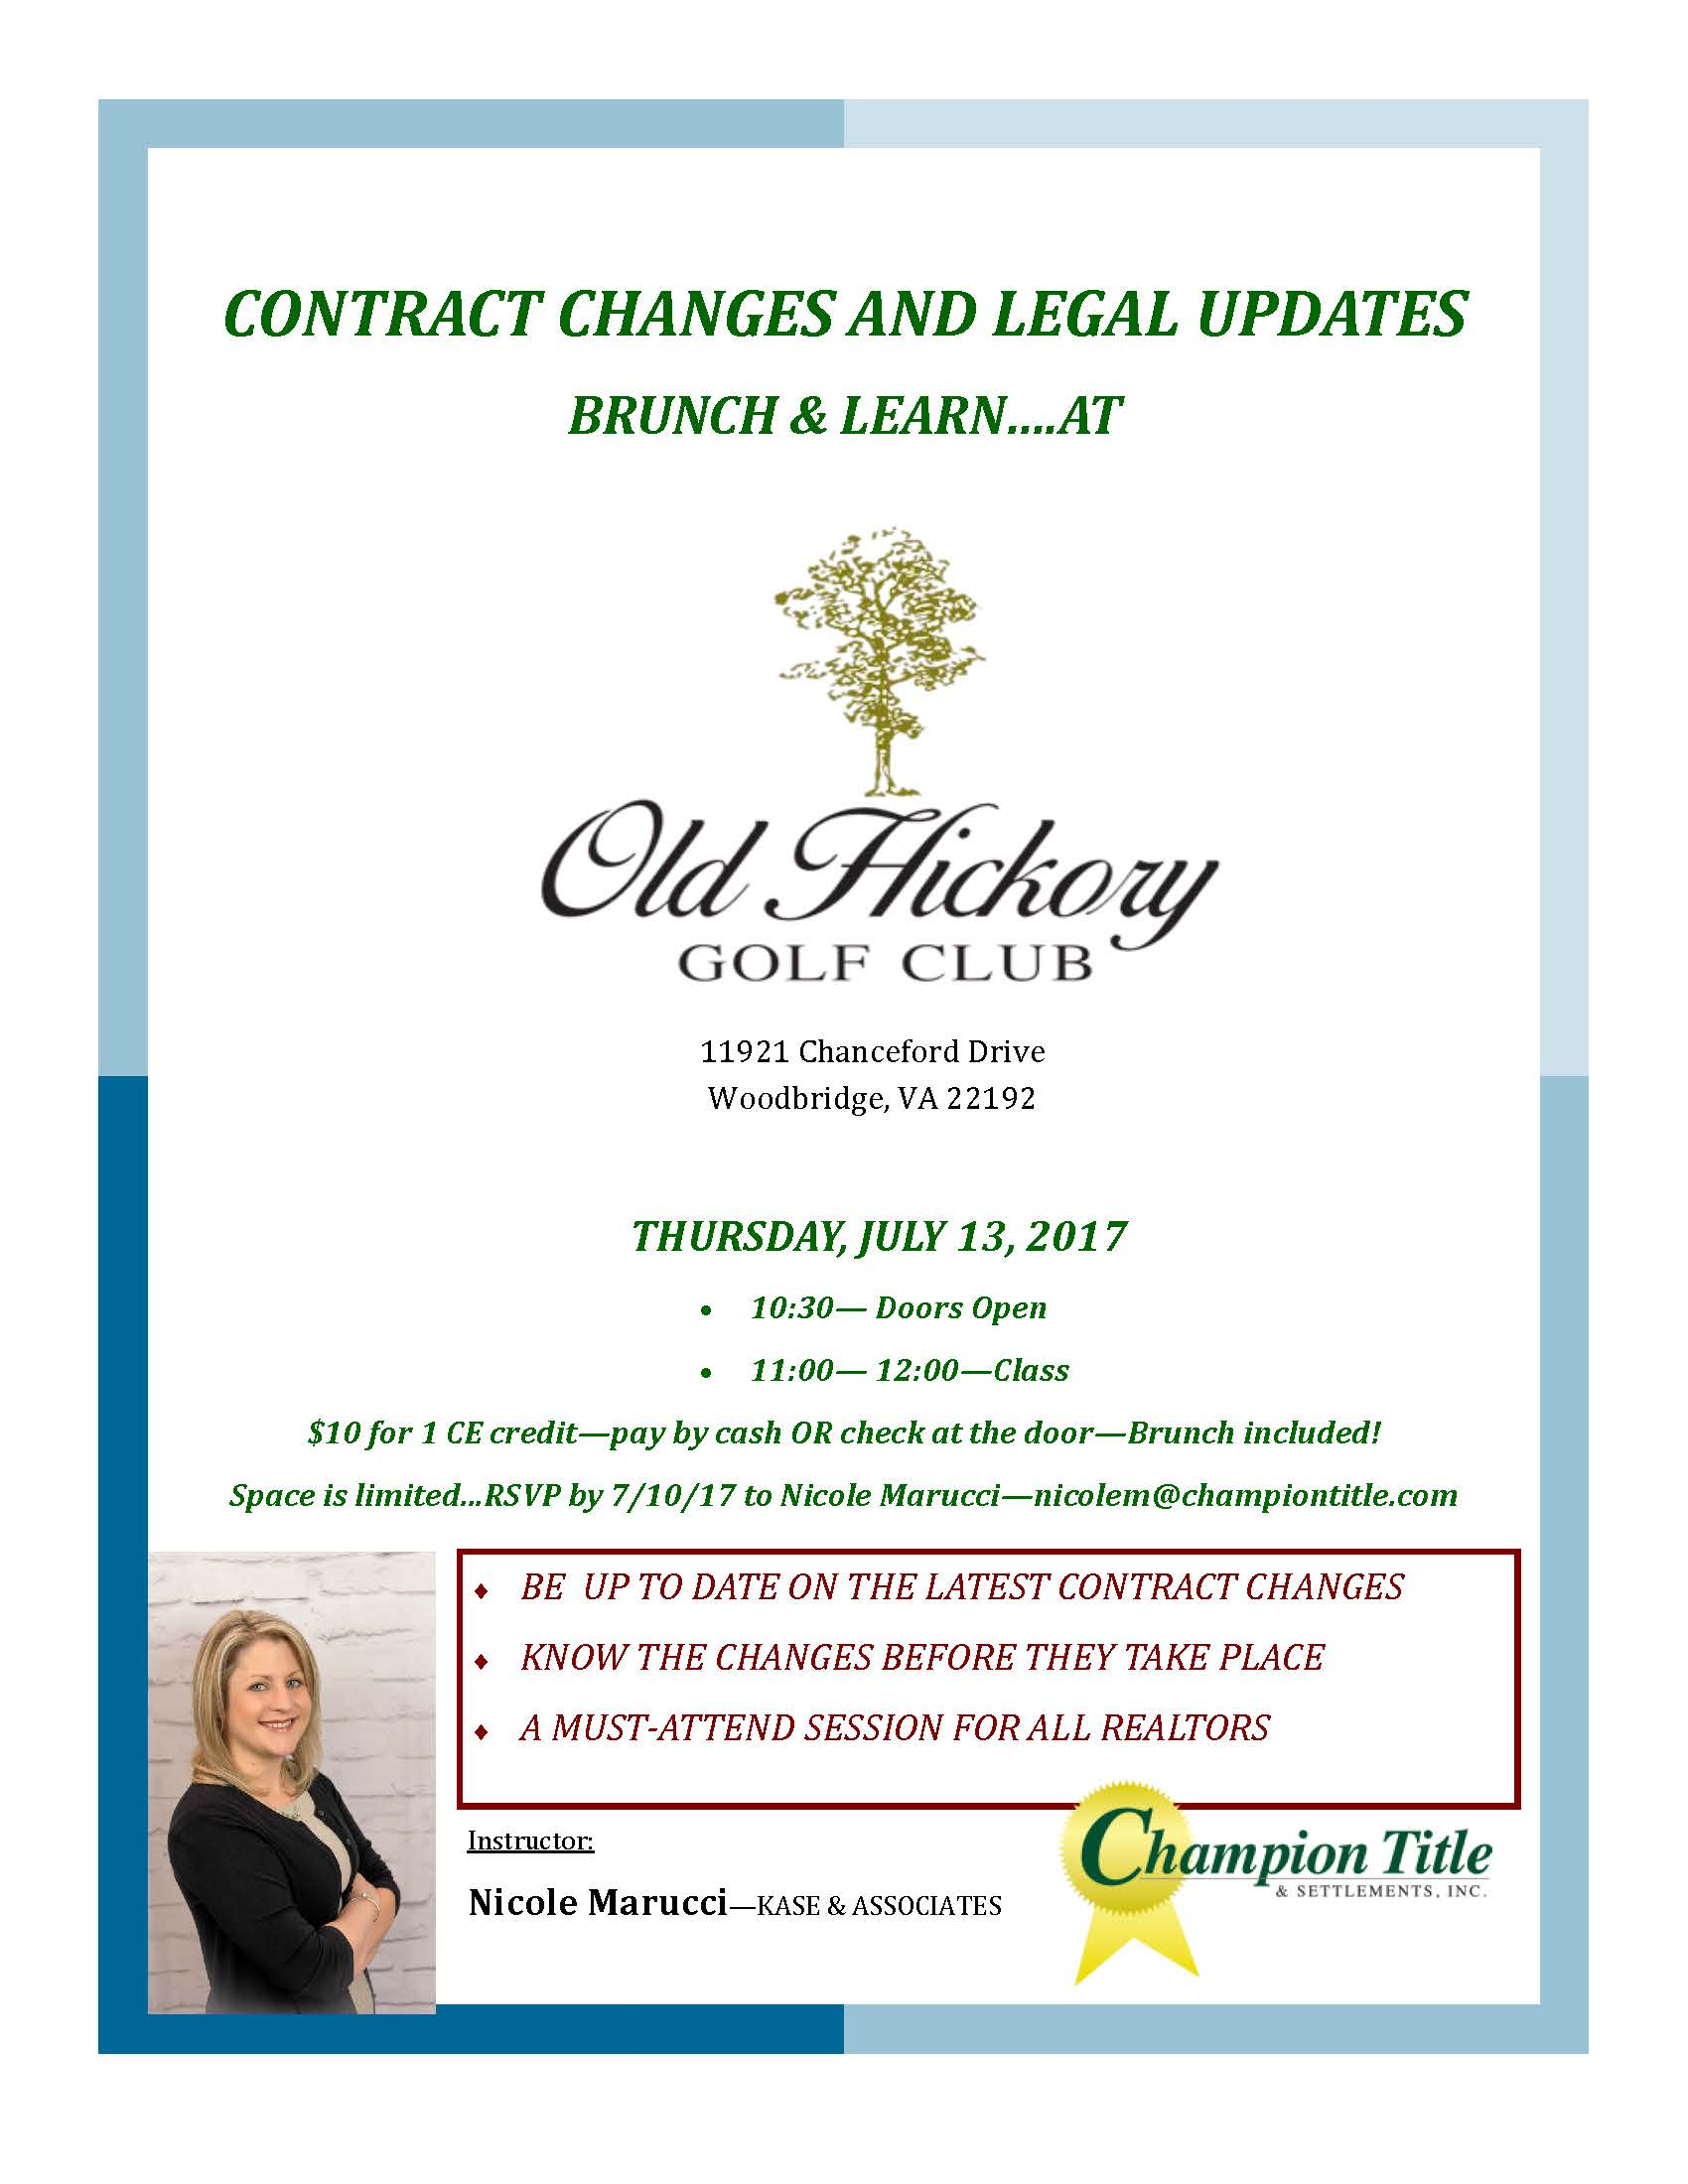 Brunch & Learn: Contract Changes and Legal Updates